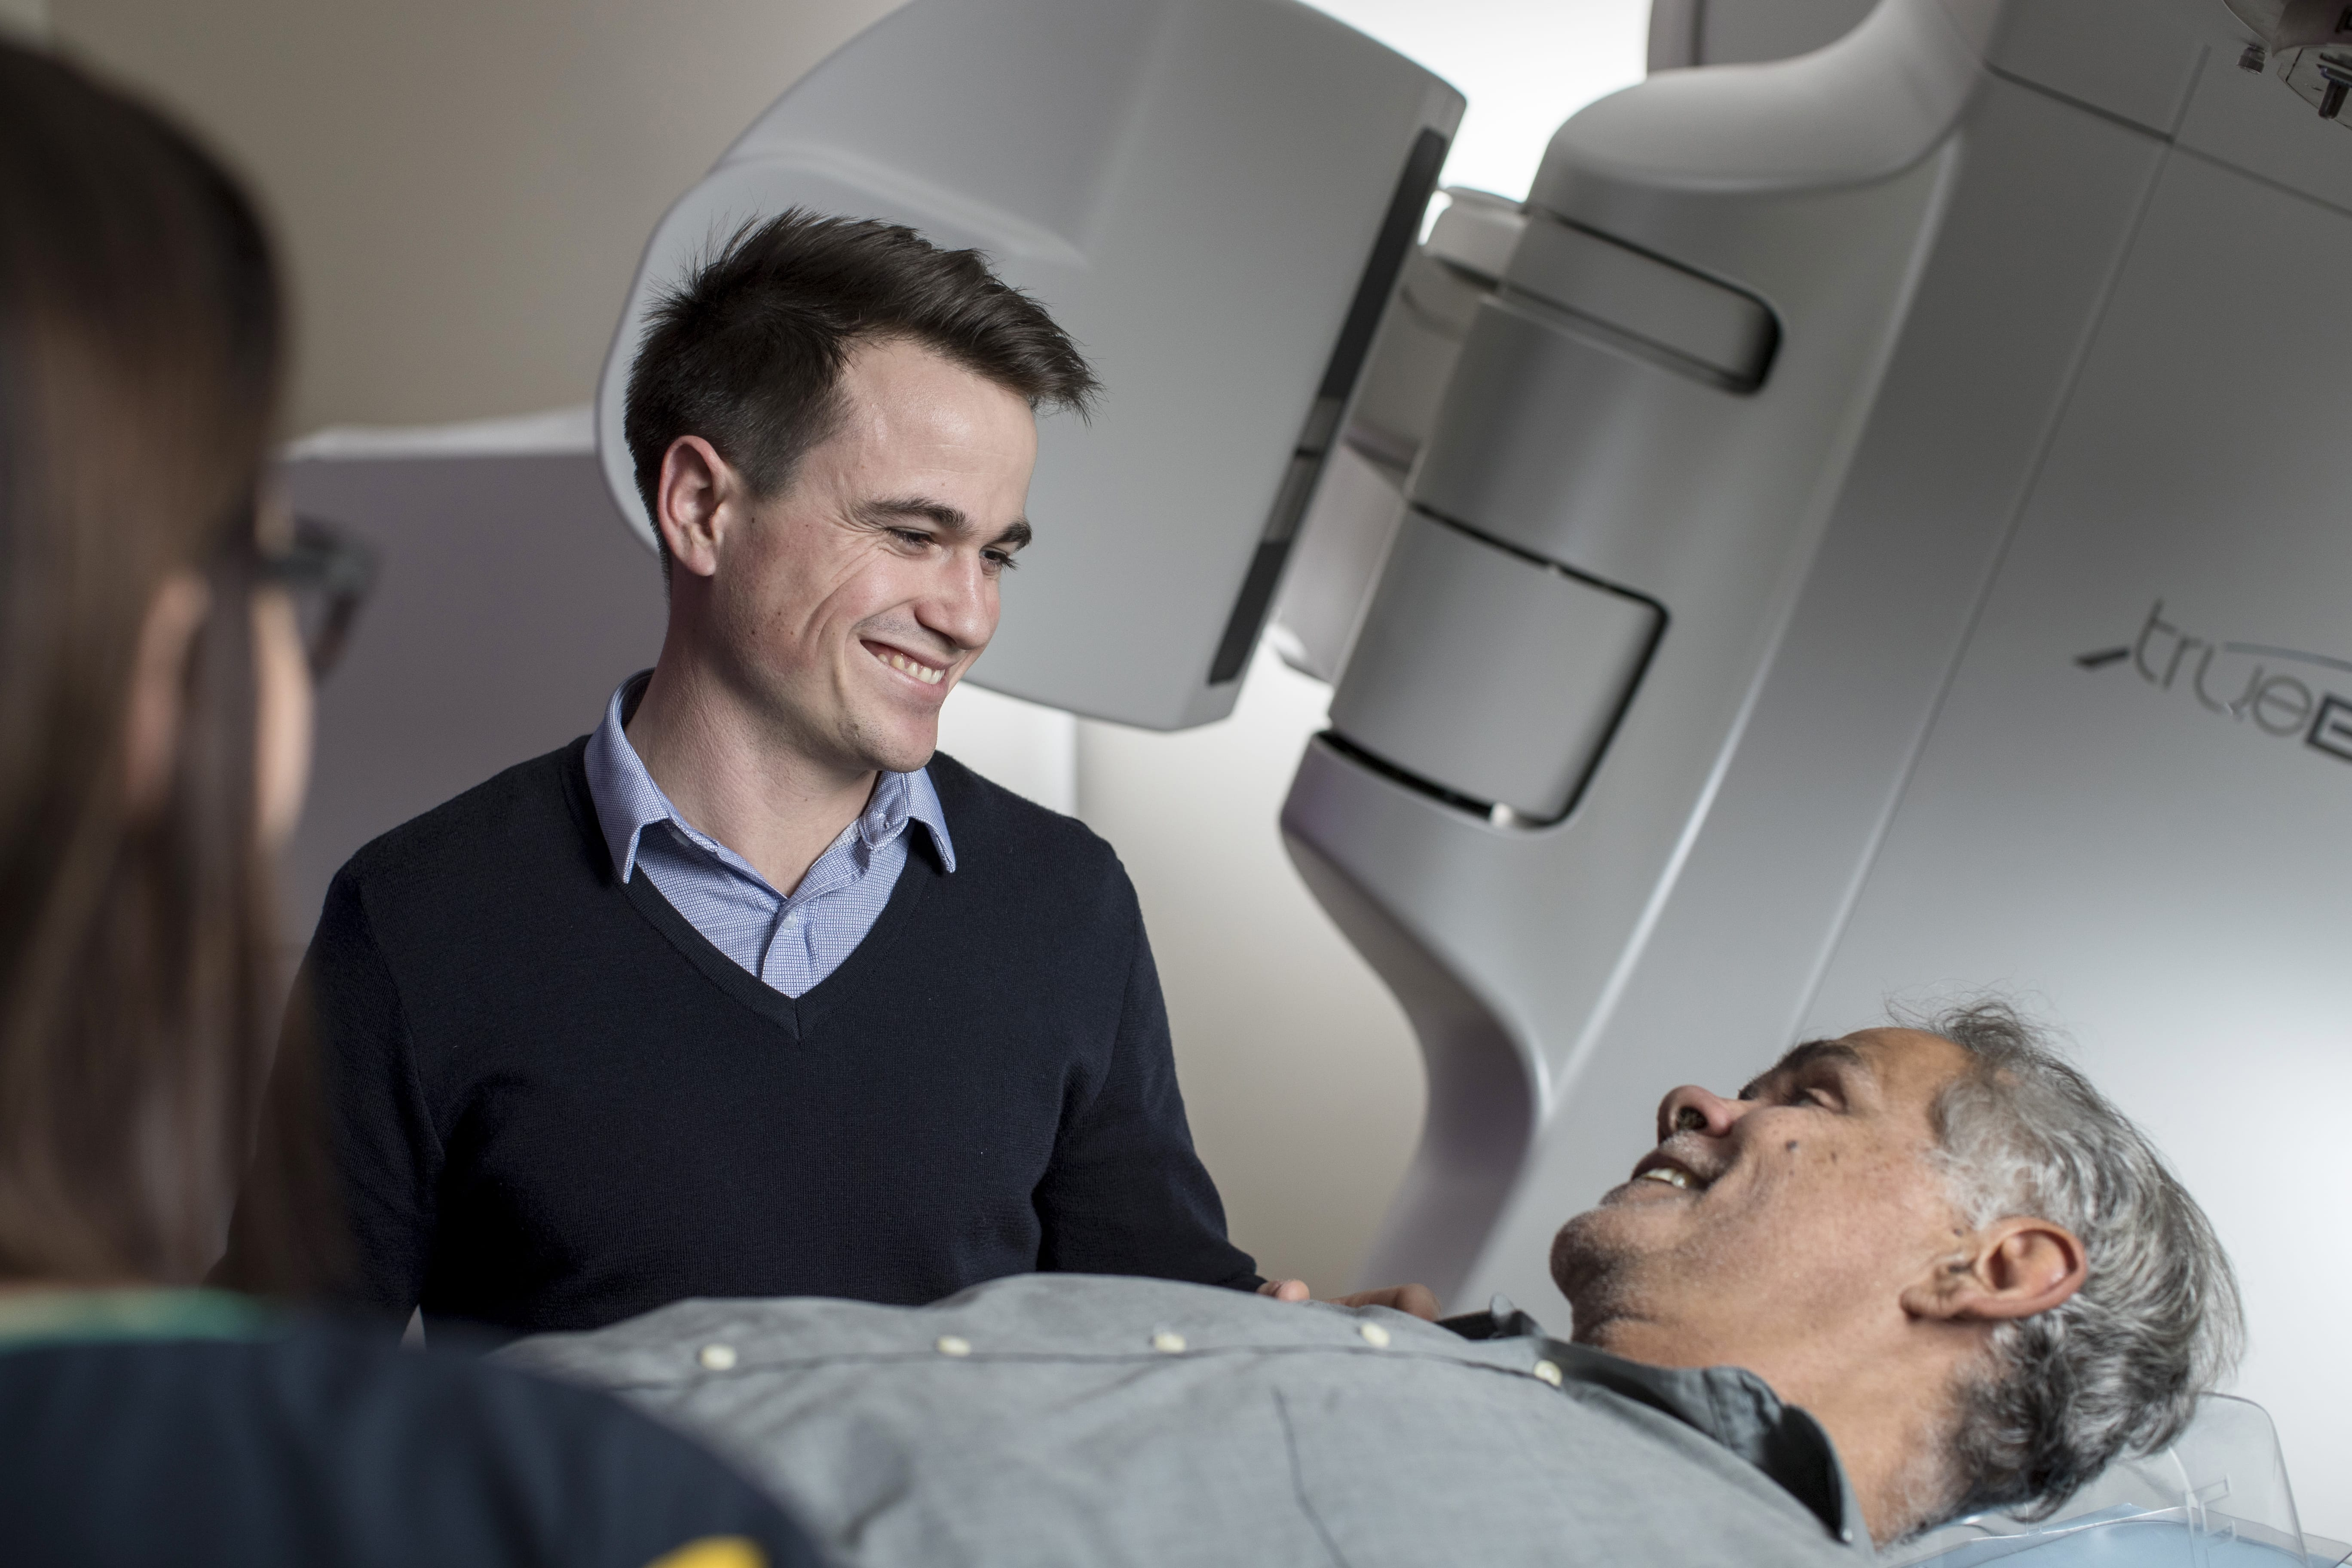 Doctor and patient experiiencing radiation therapy